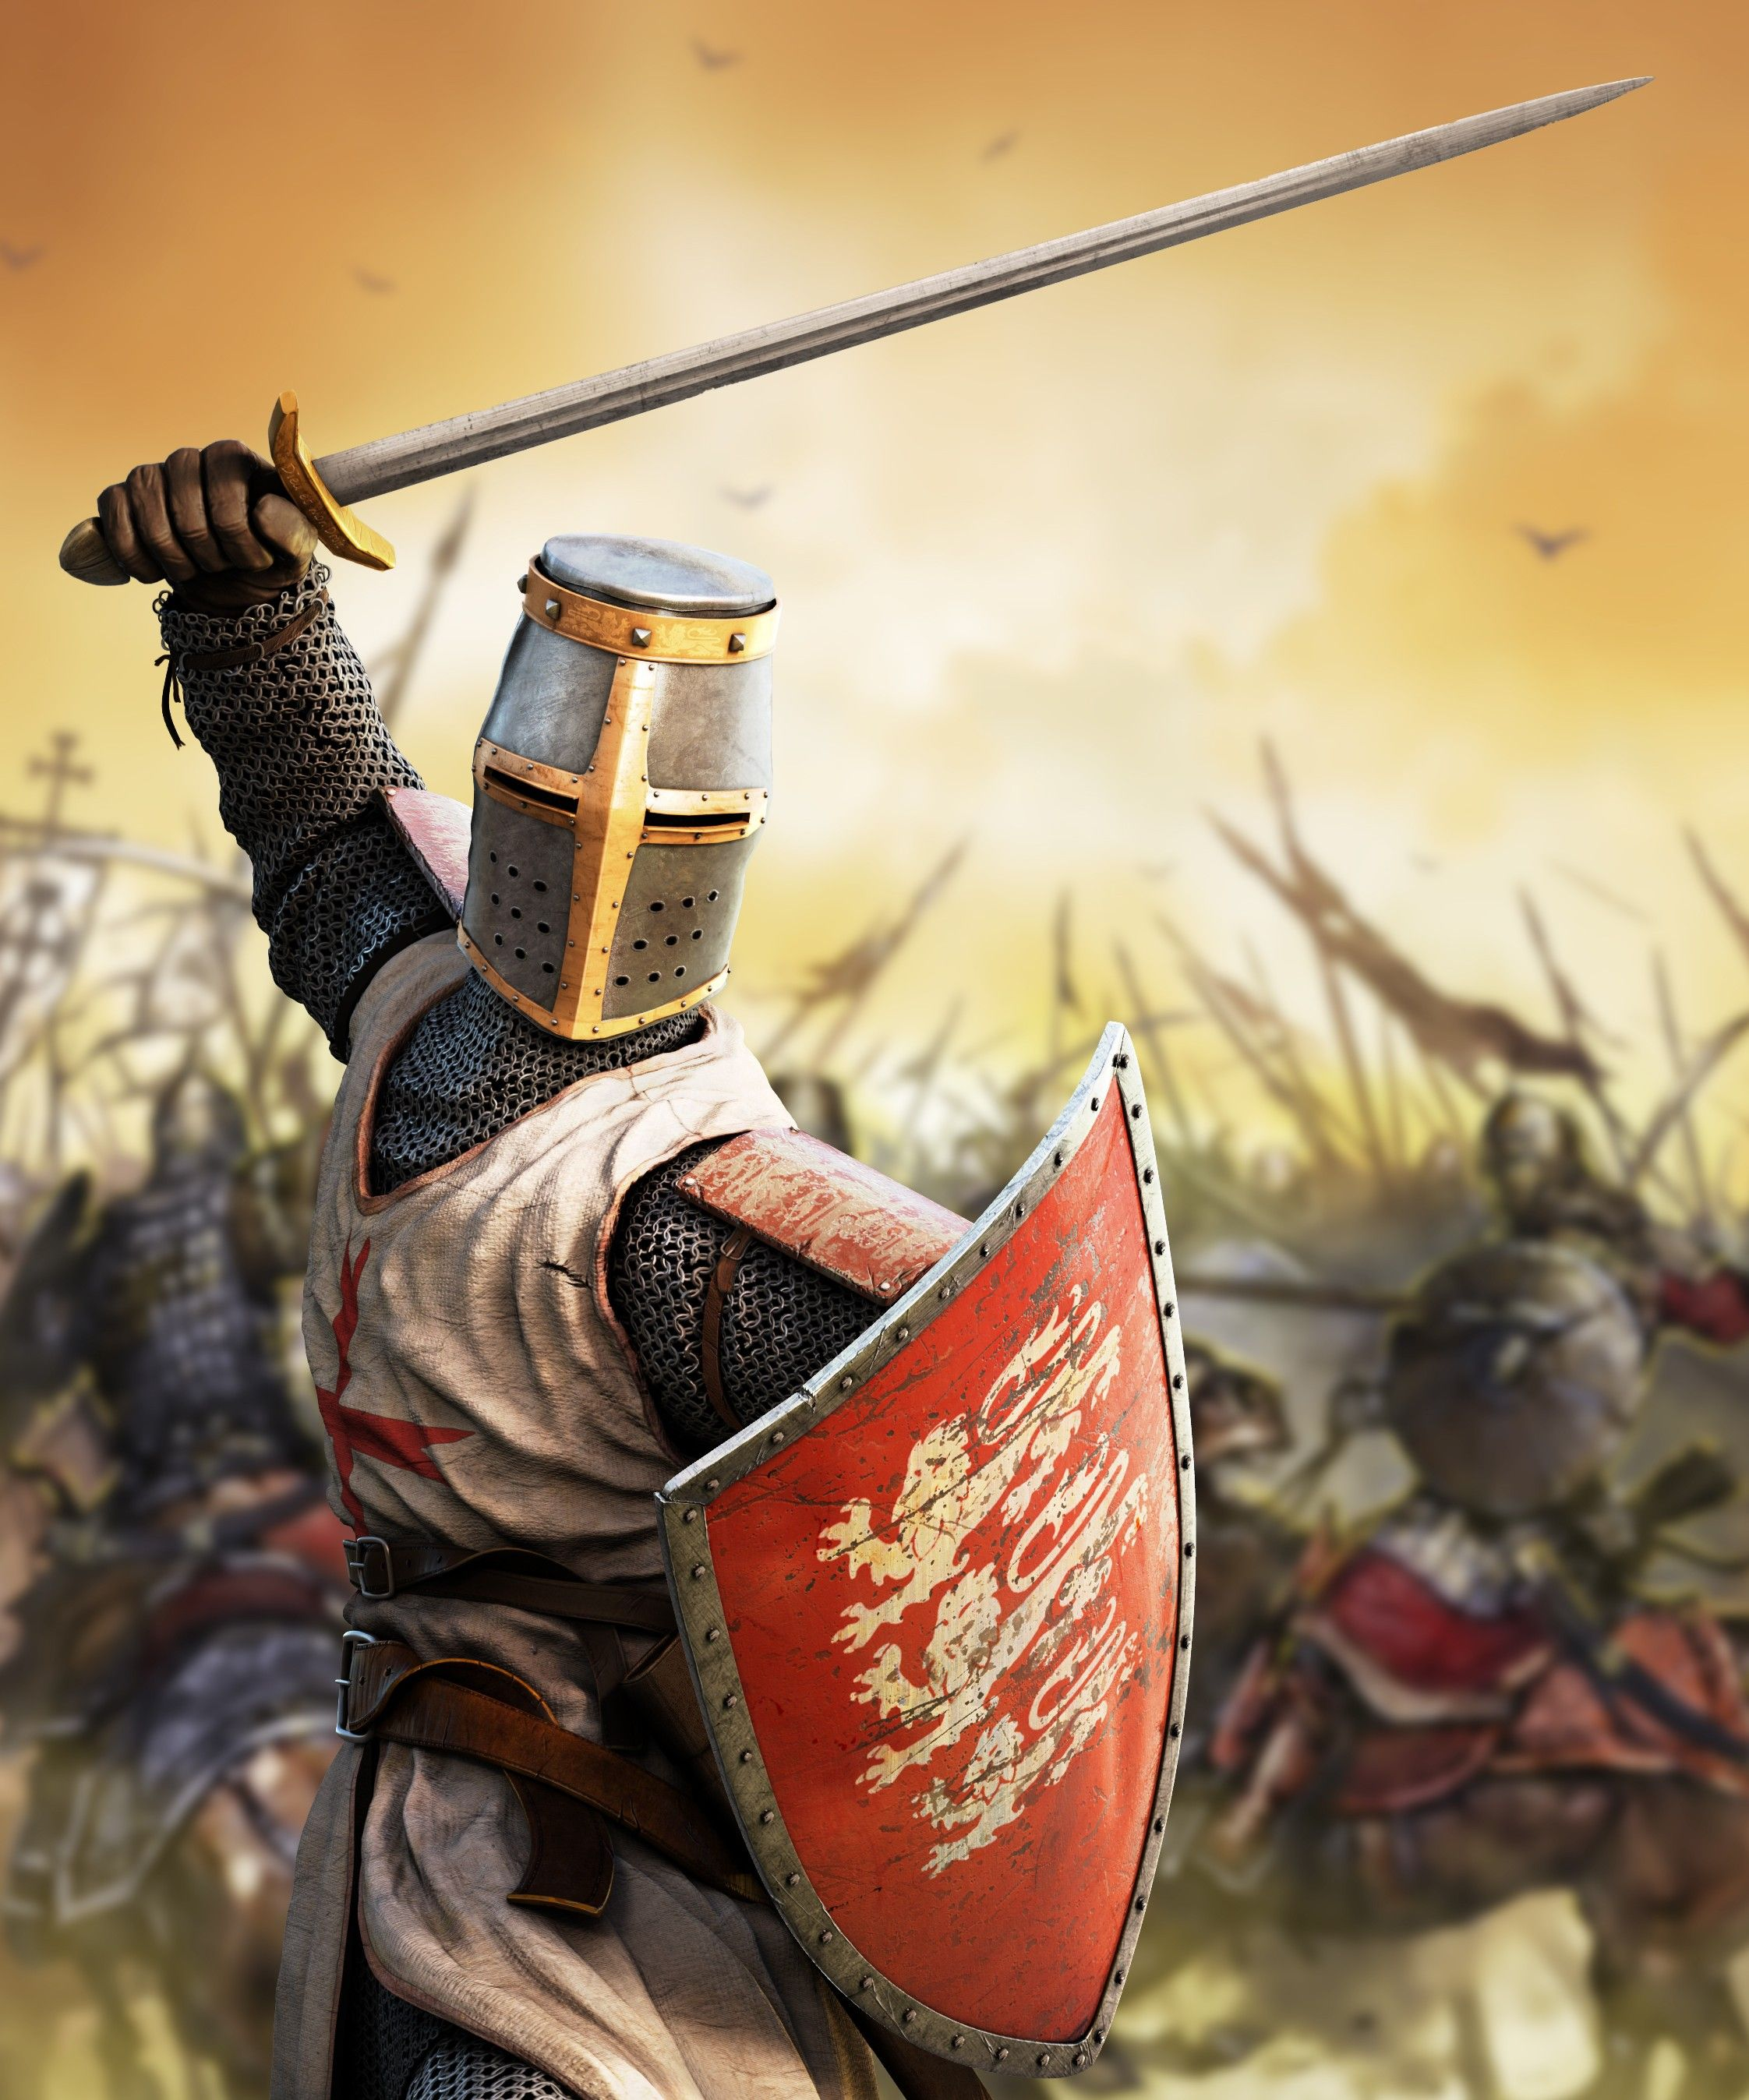 a biography of king richard the lionhearted Richard the lionheart biography richard the lionheart was born on 8 september 1157 and assumed the command of his army at the young age of 16 he excelled himself in various military commands under his father, henry ii, and later on against him.